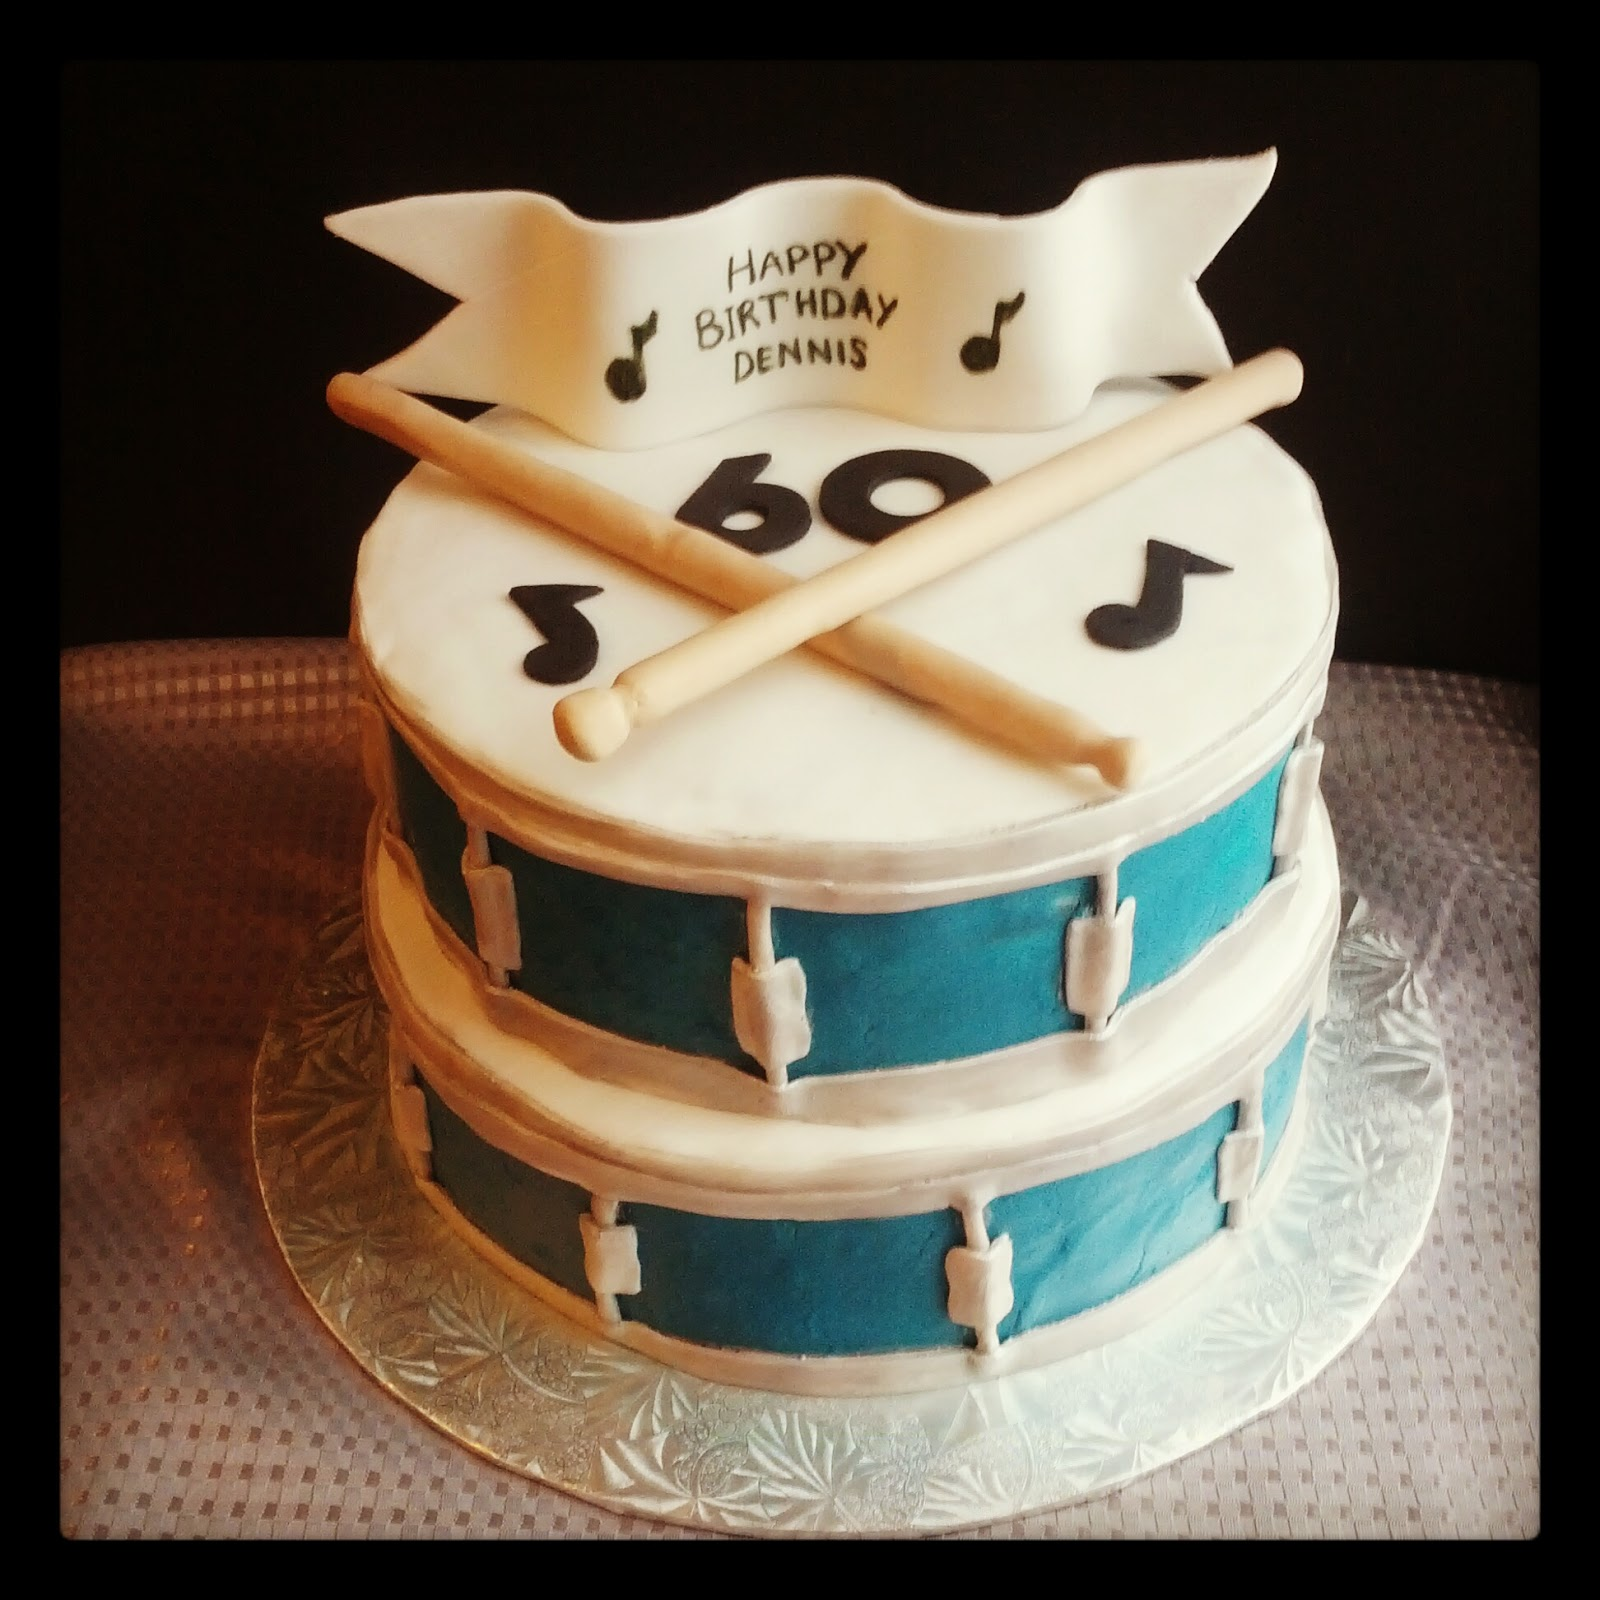 Second Generation Cake Design January 2013